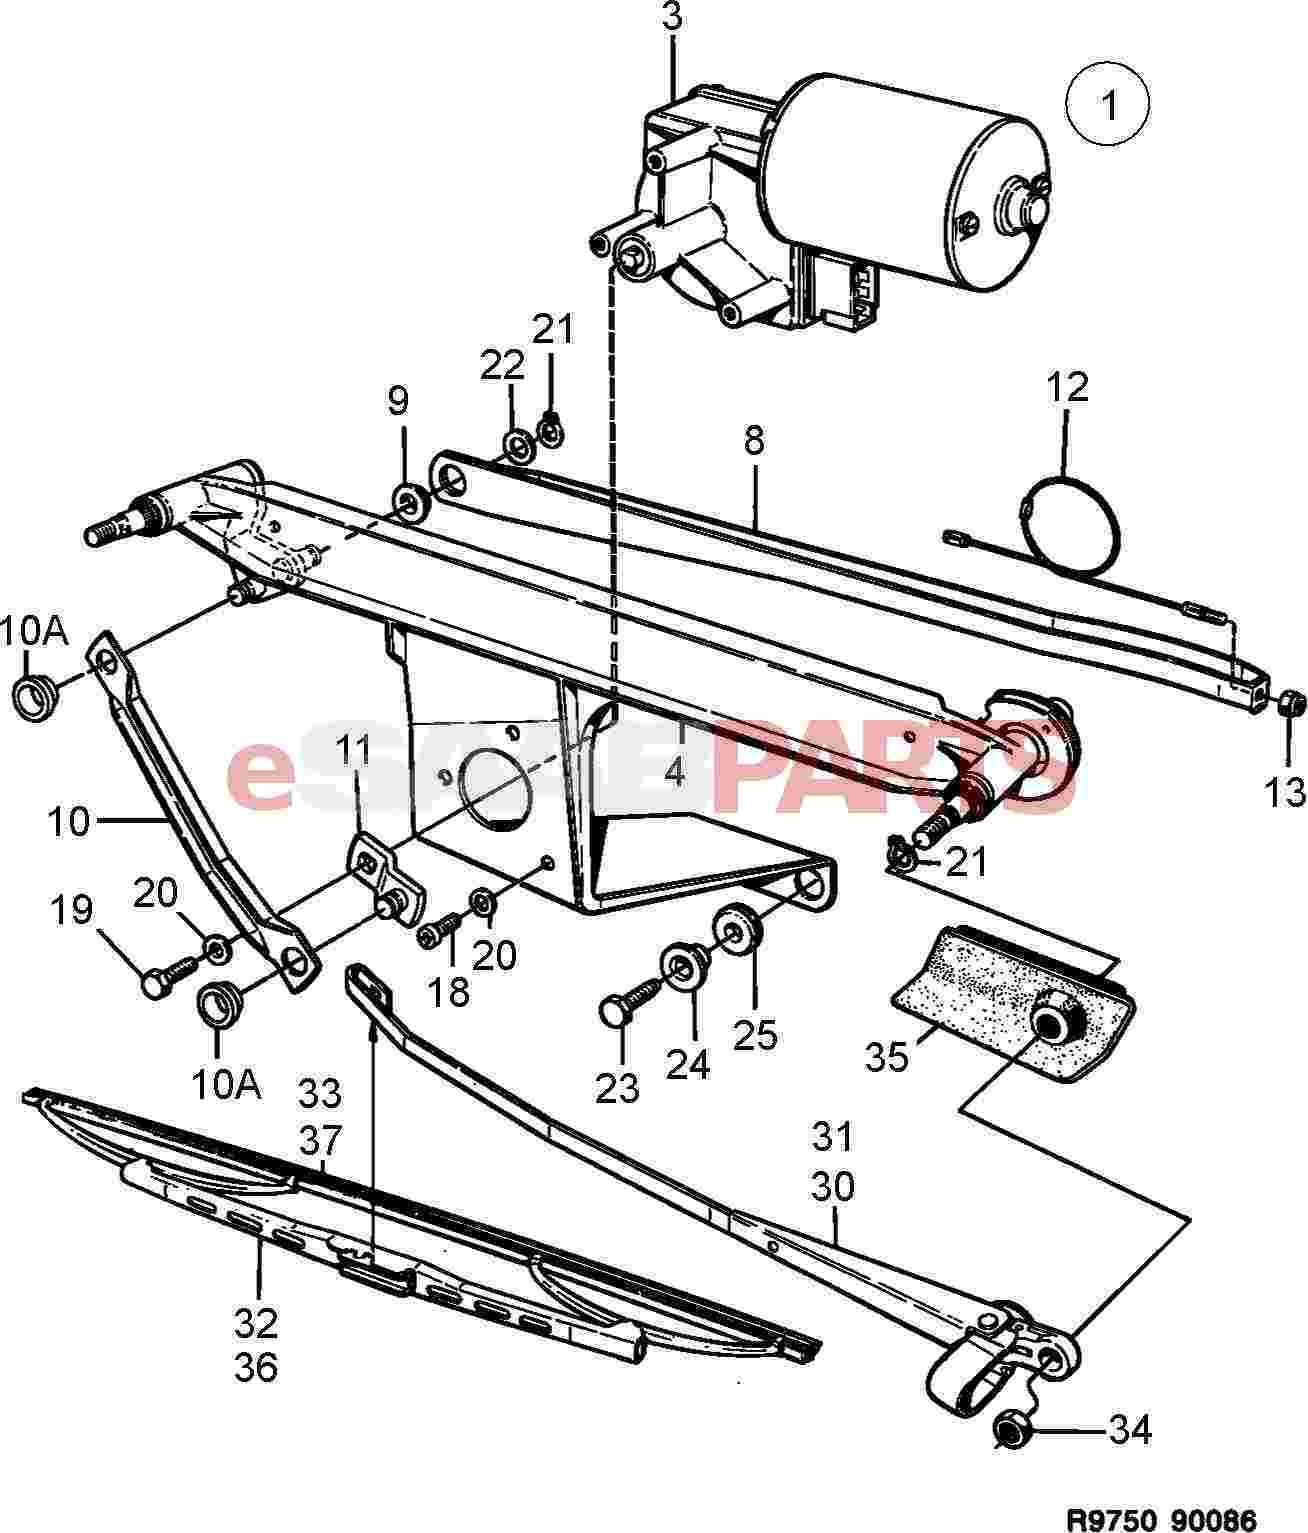 Saab 900 Electrical Parts Wipers Related Wiring Diagram 1989 Windshield Wiper